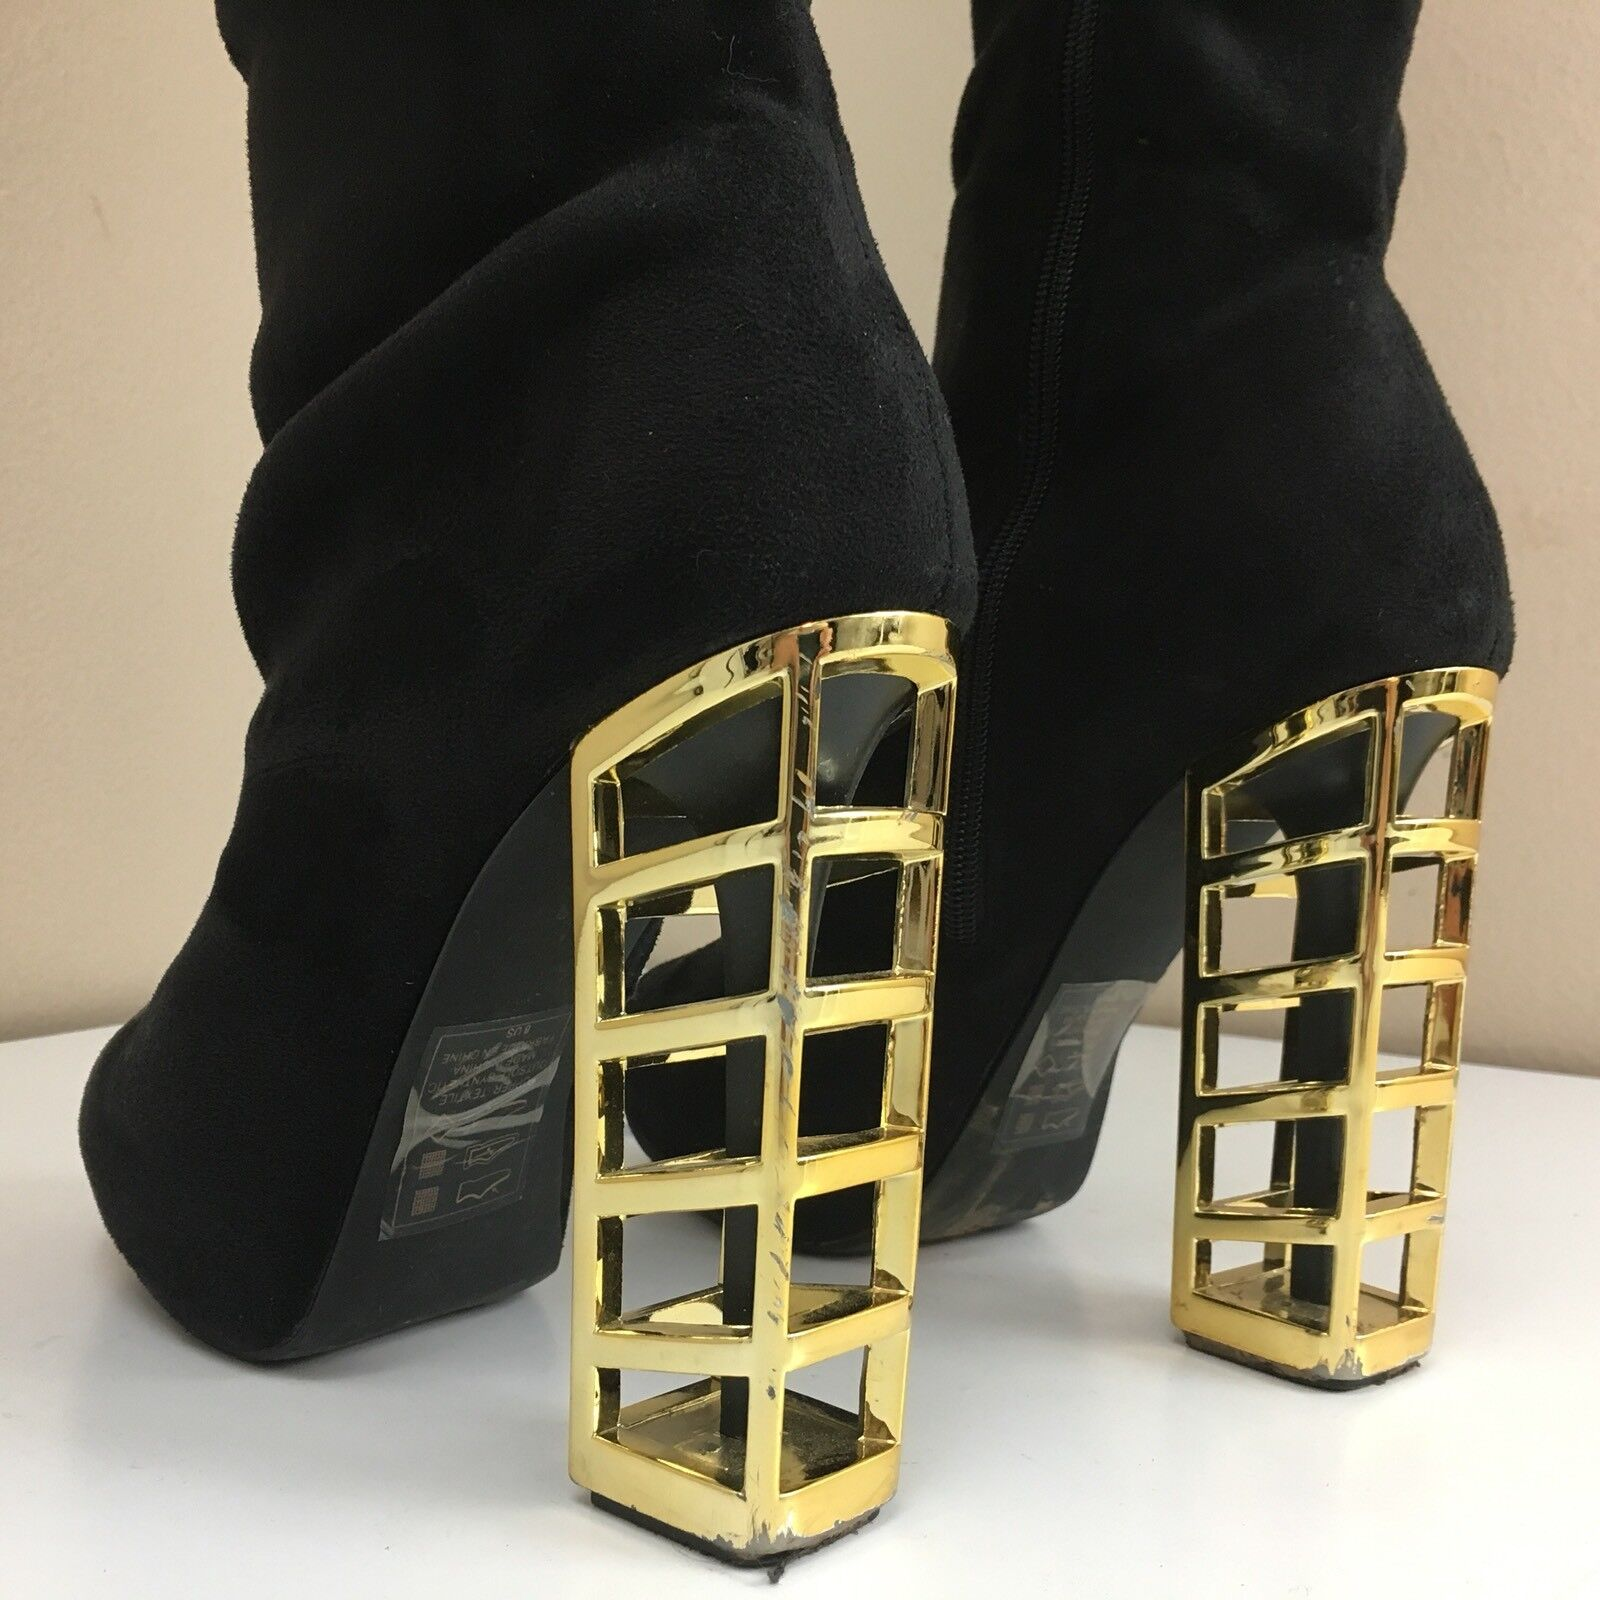 Scene Black Faux Suede Leather TALL THIGH High OTK FASHION Boot GOLD CAGE Heel 8